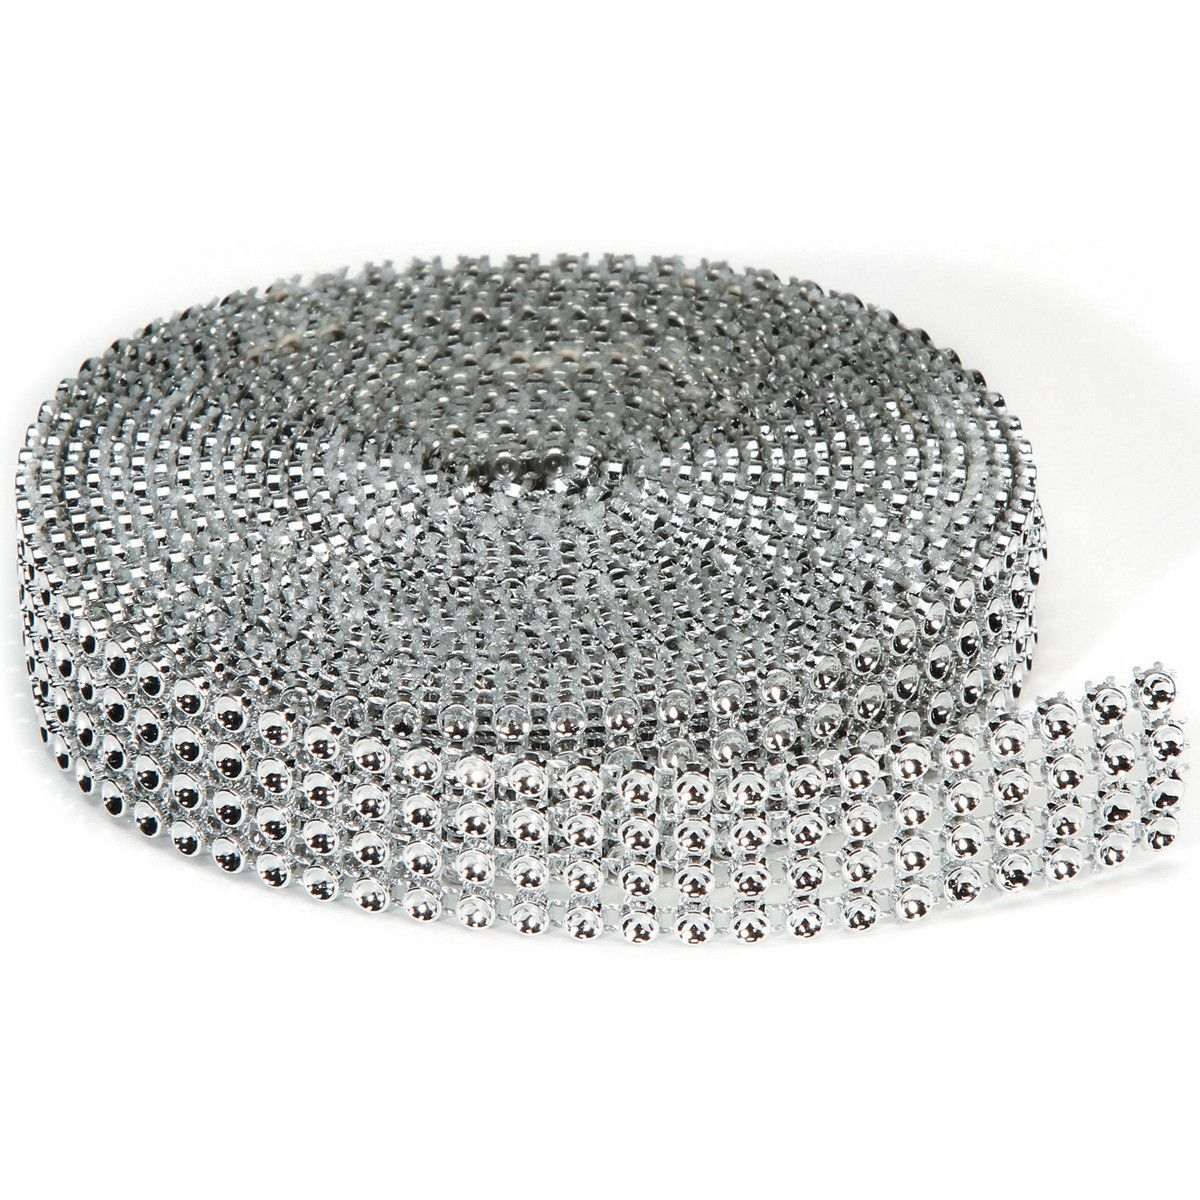 Bling On A Roll 3mmX3yd-4 Rows, Silver